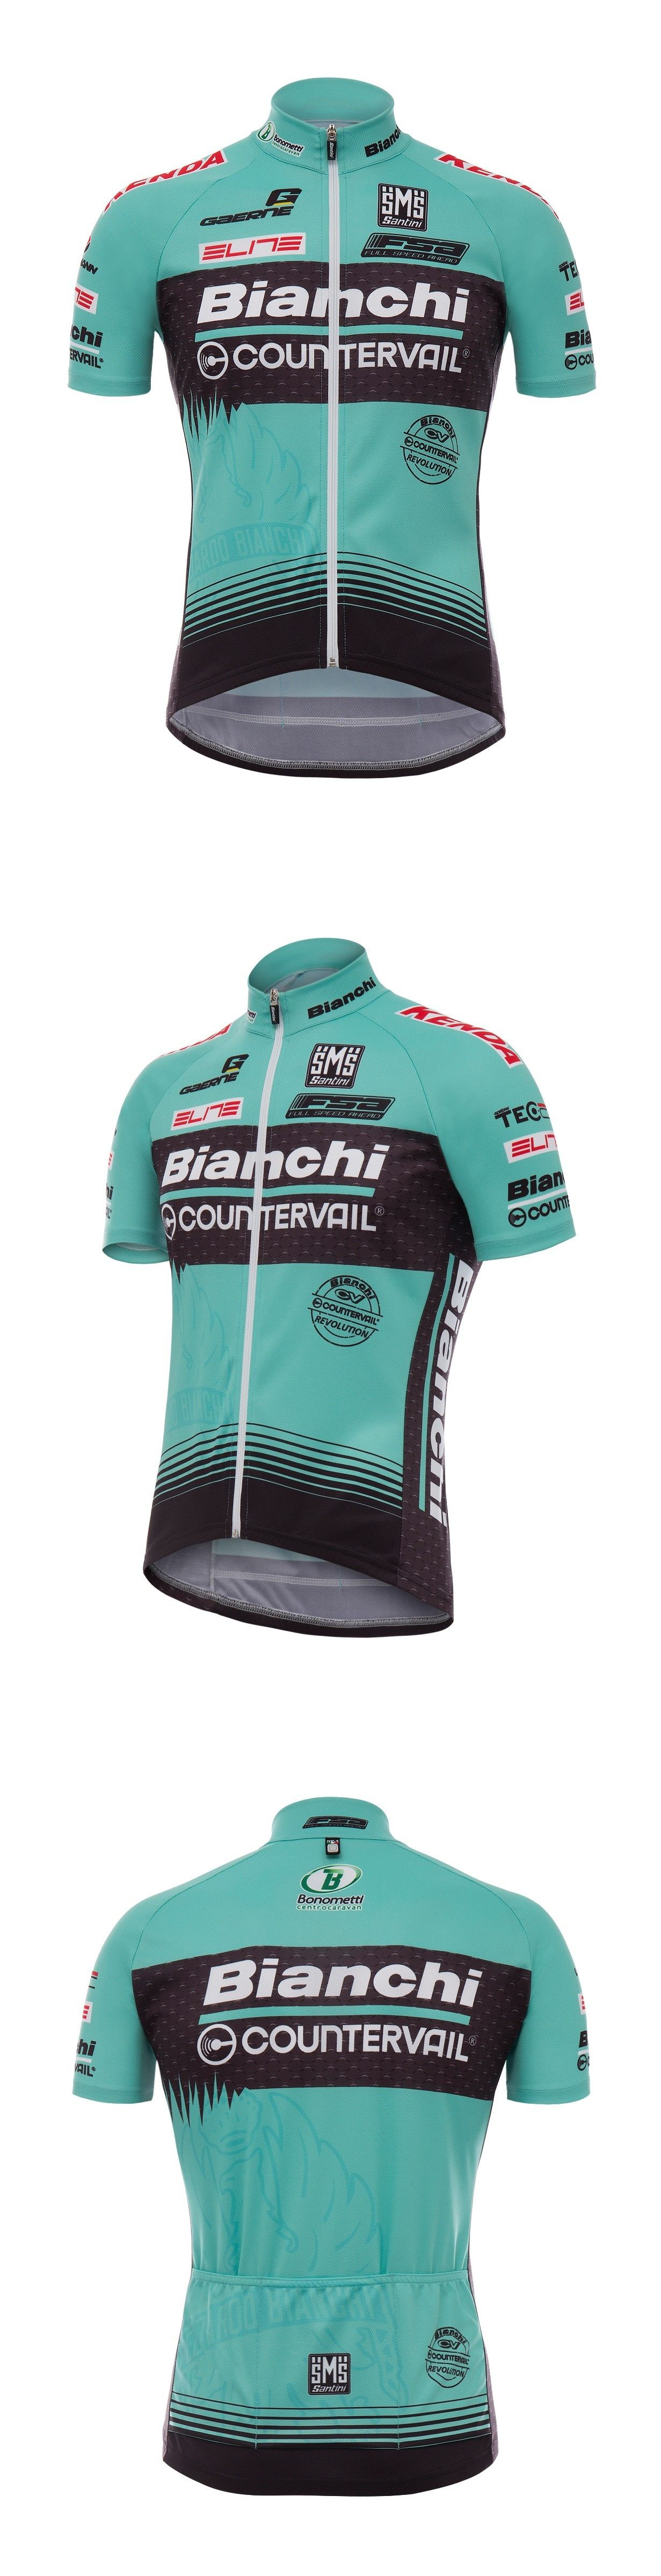 Jerseys 56183  2017 Bianchi Mtb Team Classic Fit Cycling Jersey Made In  Italy By Santini 593a7e05a